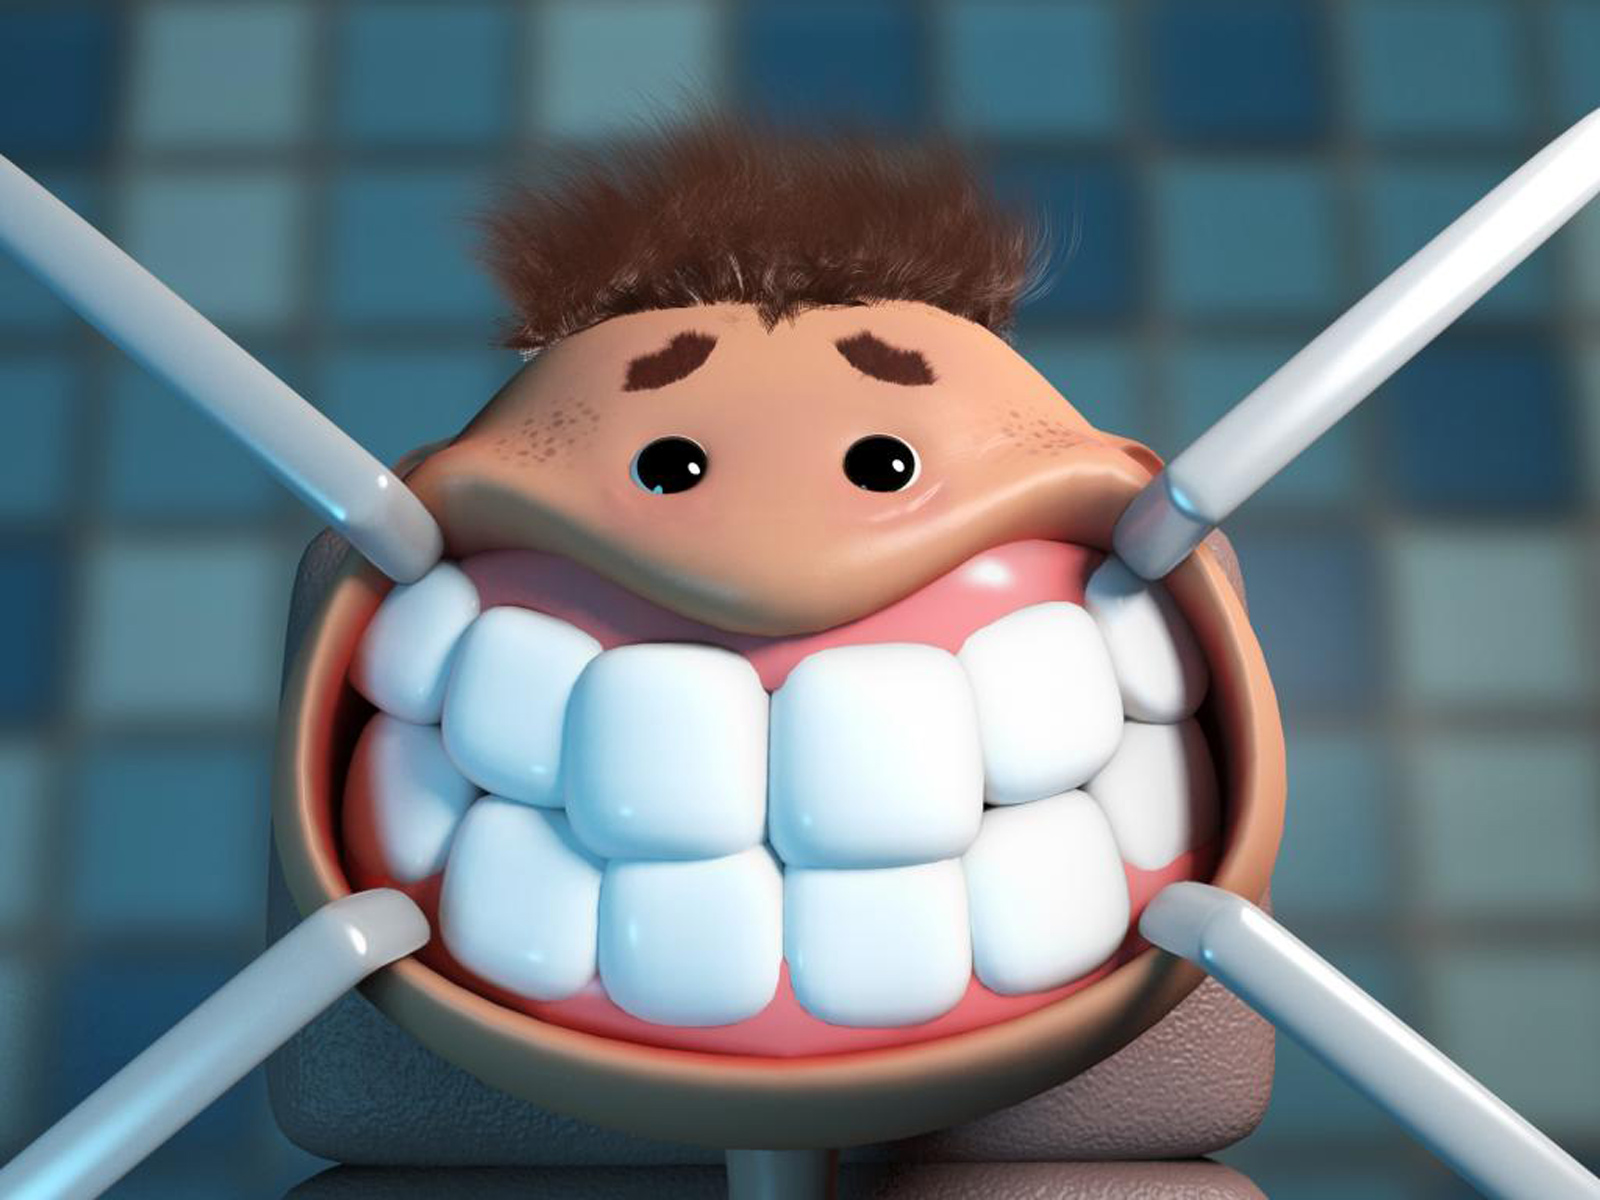 Dental Wallpaper Desktop - WallpaperSafari